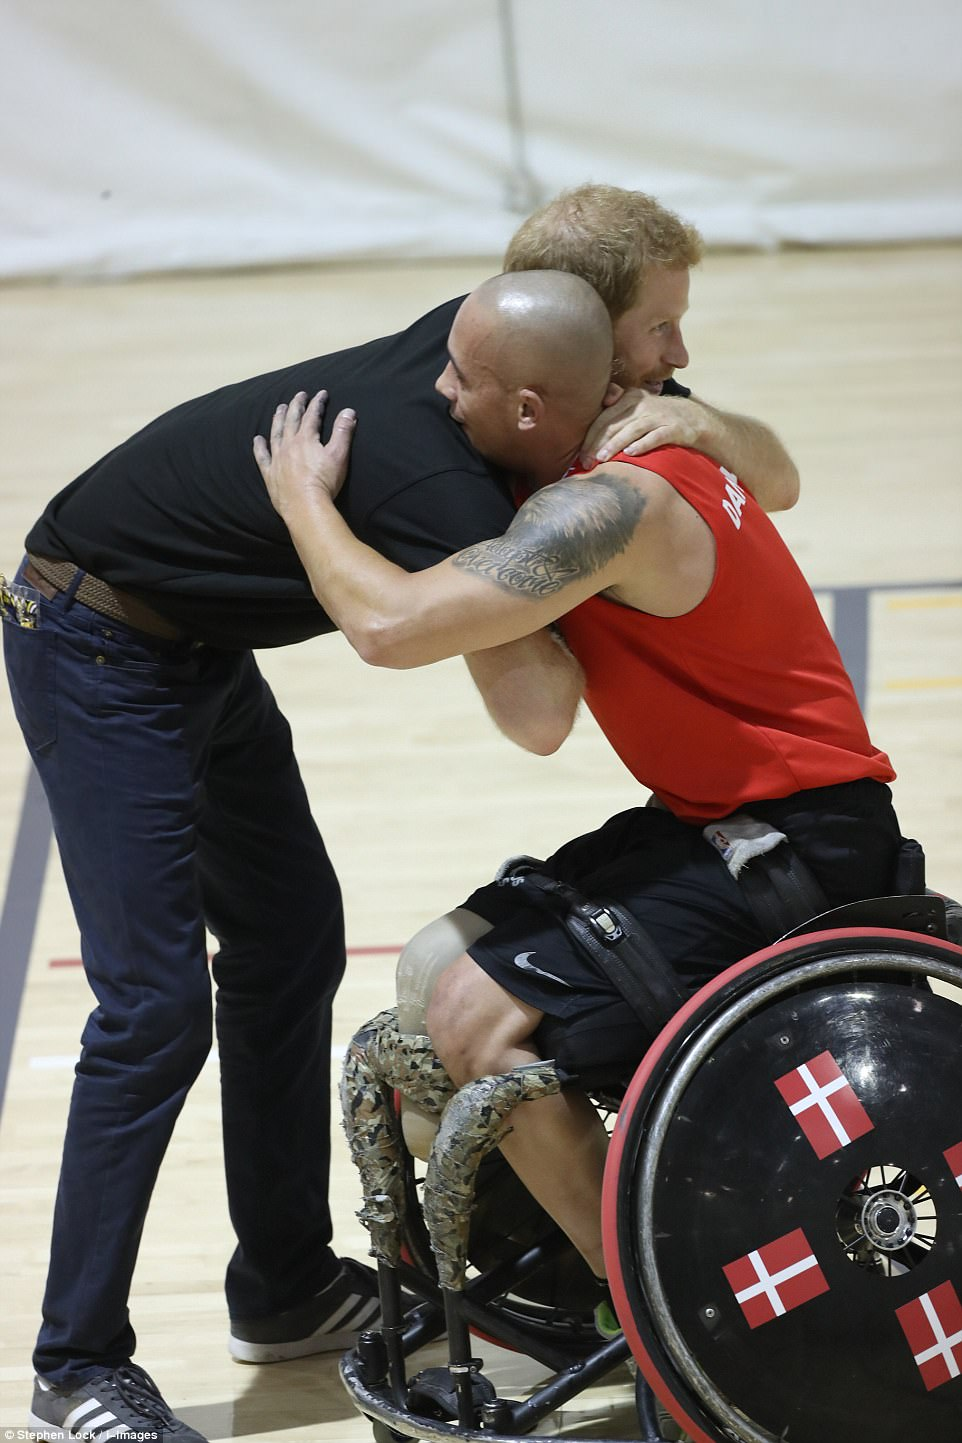 Harry the hugger: The prince is counting down to the opening of the Invictus Games - and went to a training session where he hugged one of the wheelchair athletes taking part